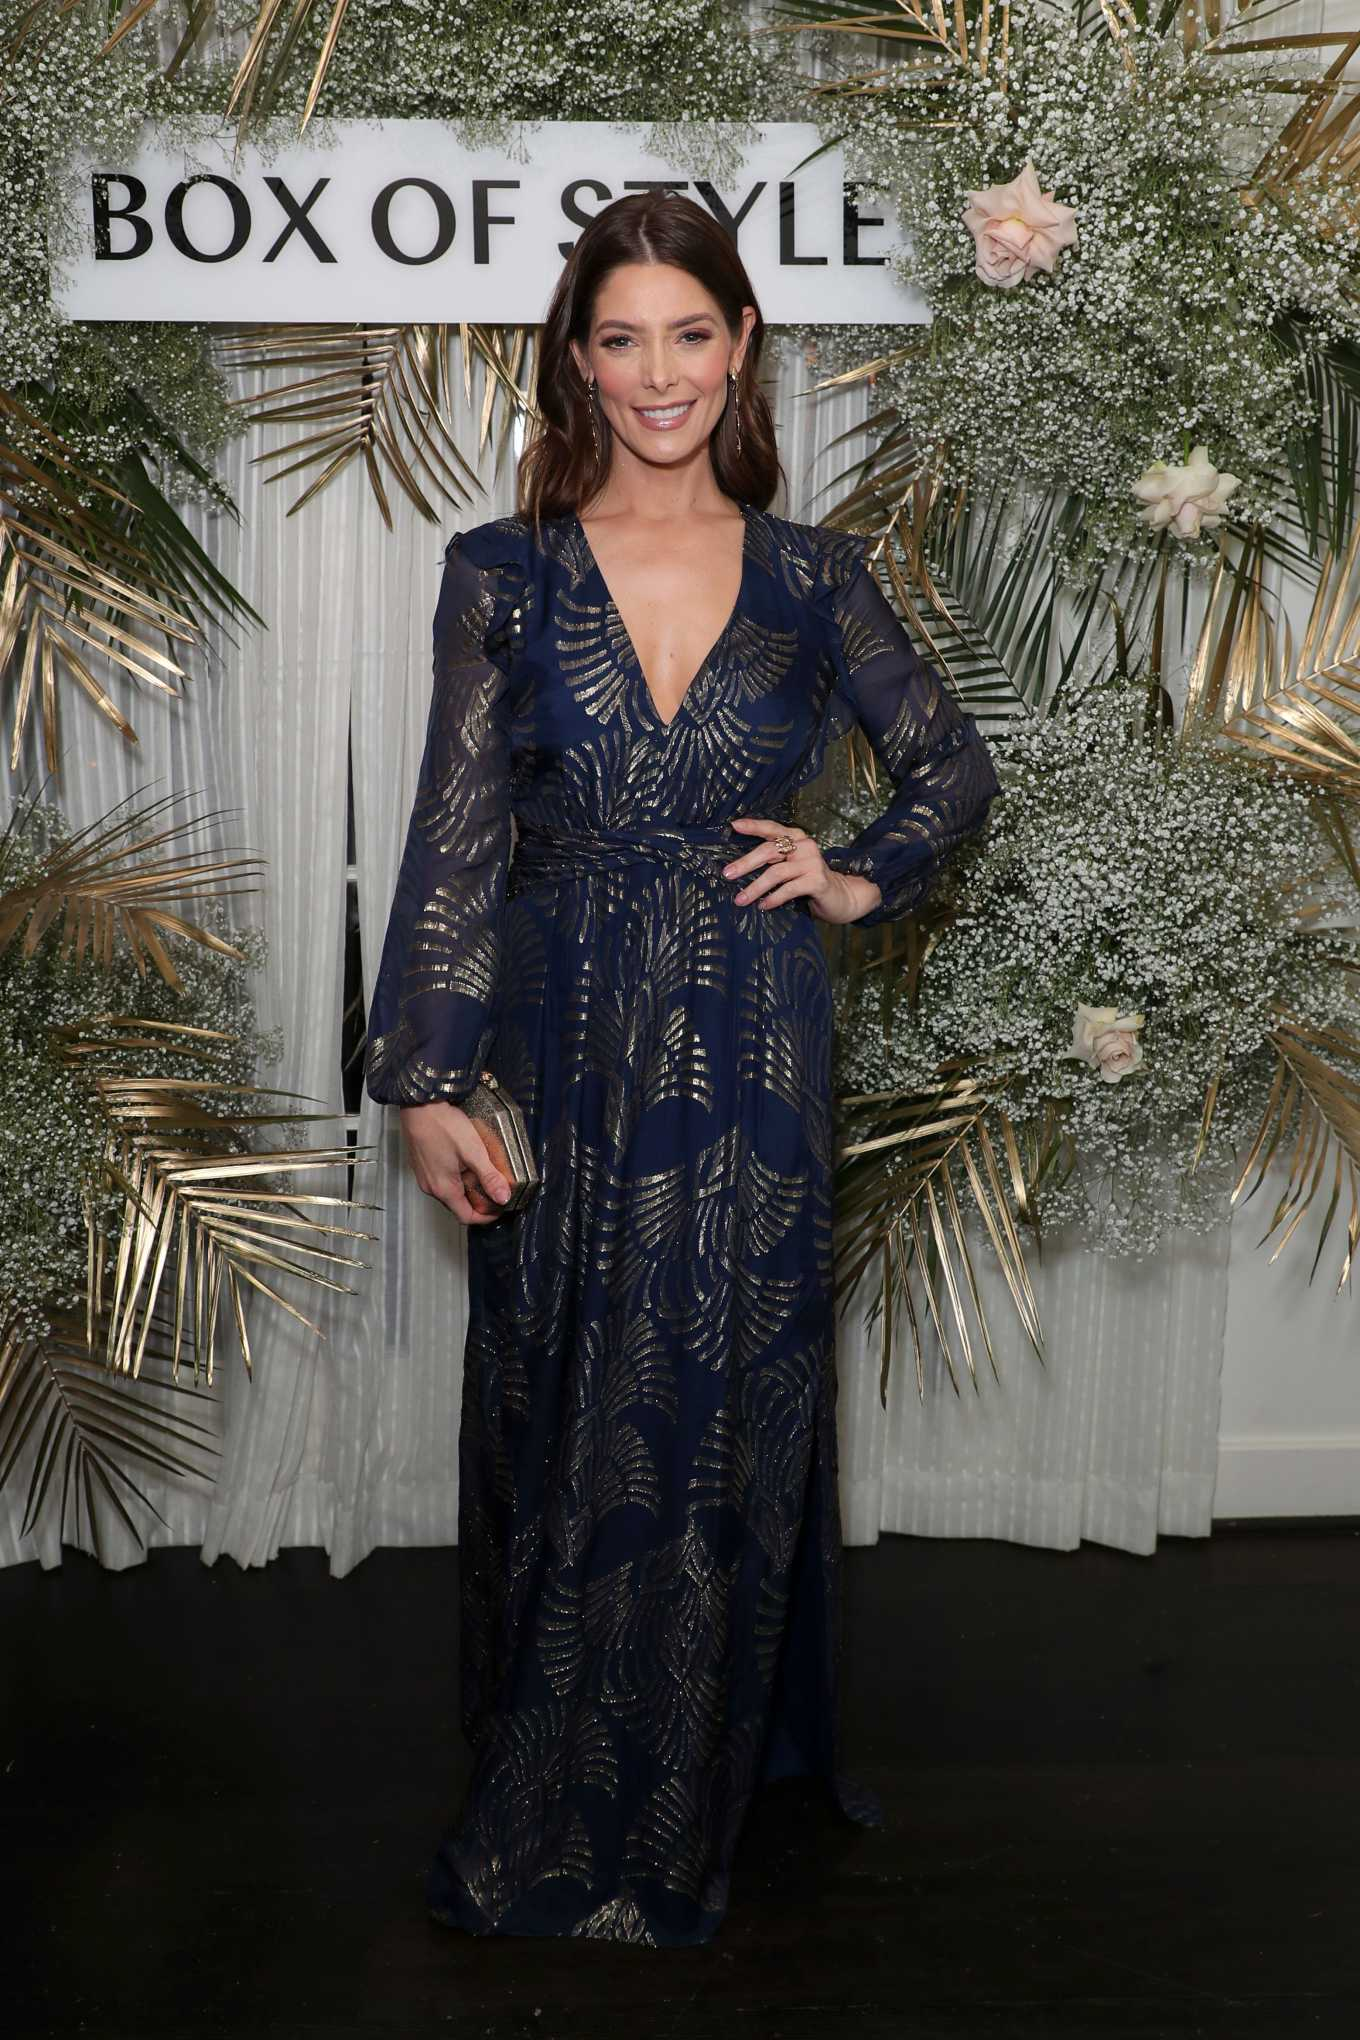 Ashley Greene 2020 : Ashley Greene – Rachel Zoe Collection and Box of Style Spring Event with Tanqueray-02